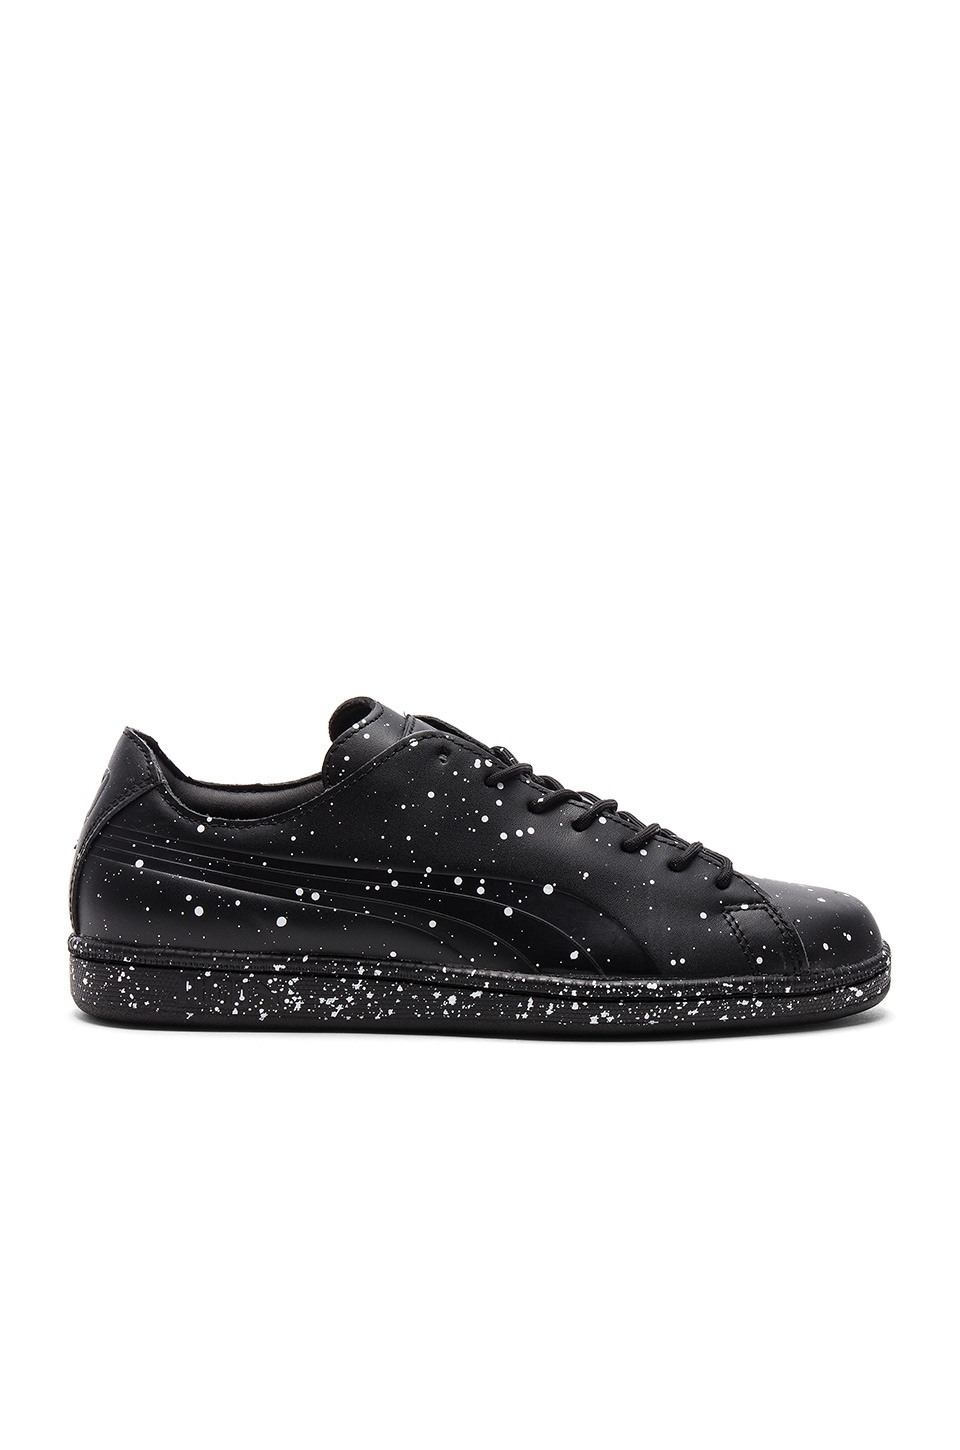 x DP Match Splatter by Puma Select